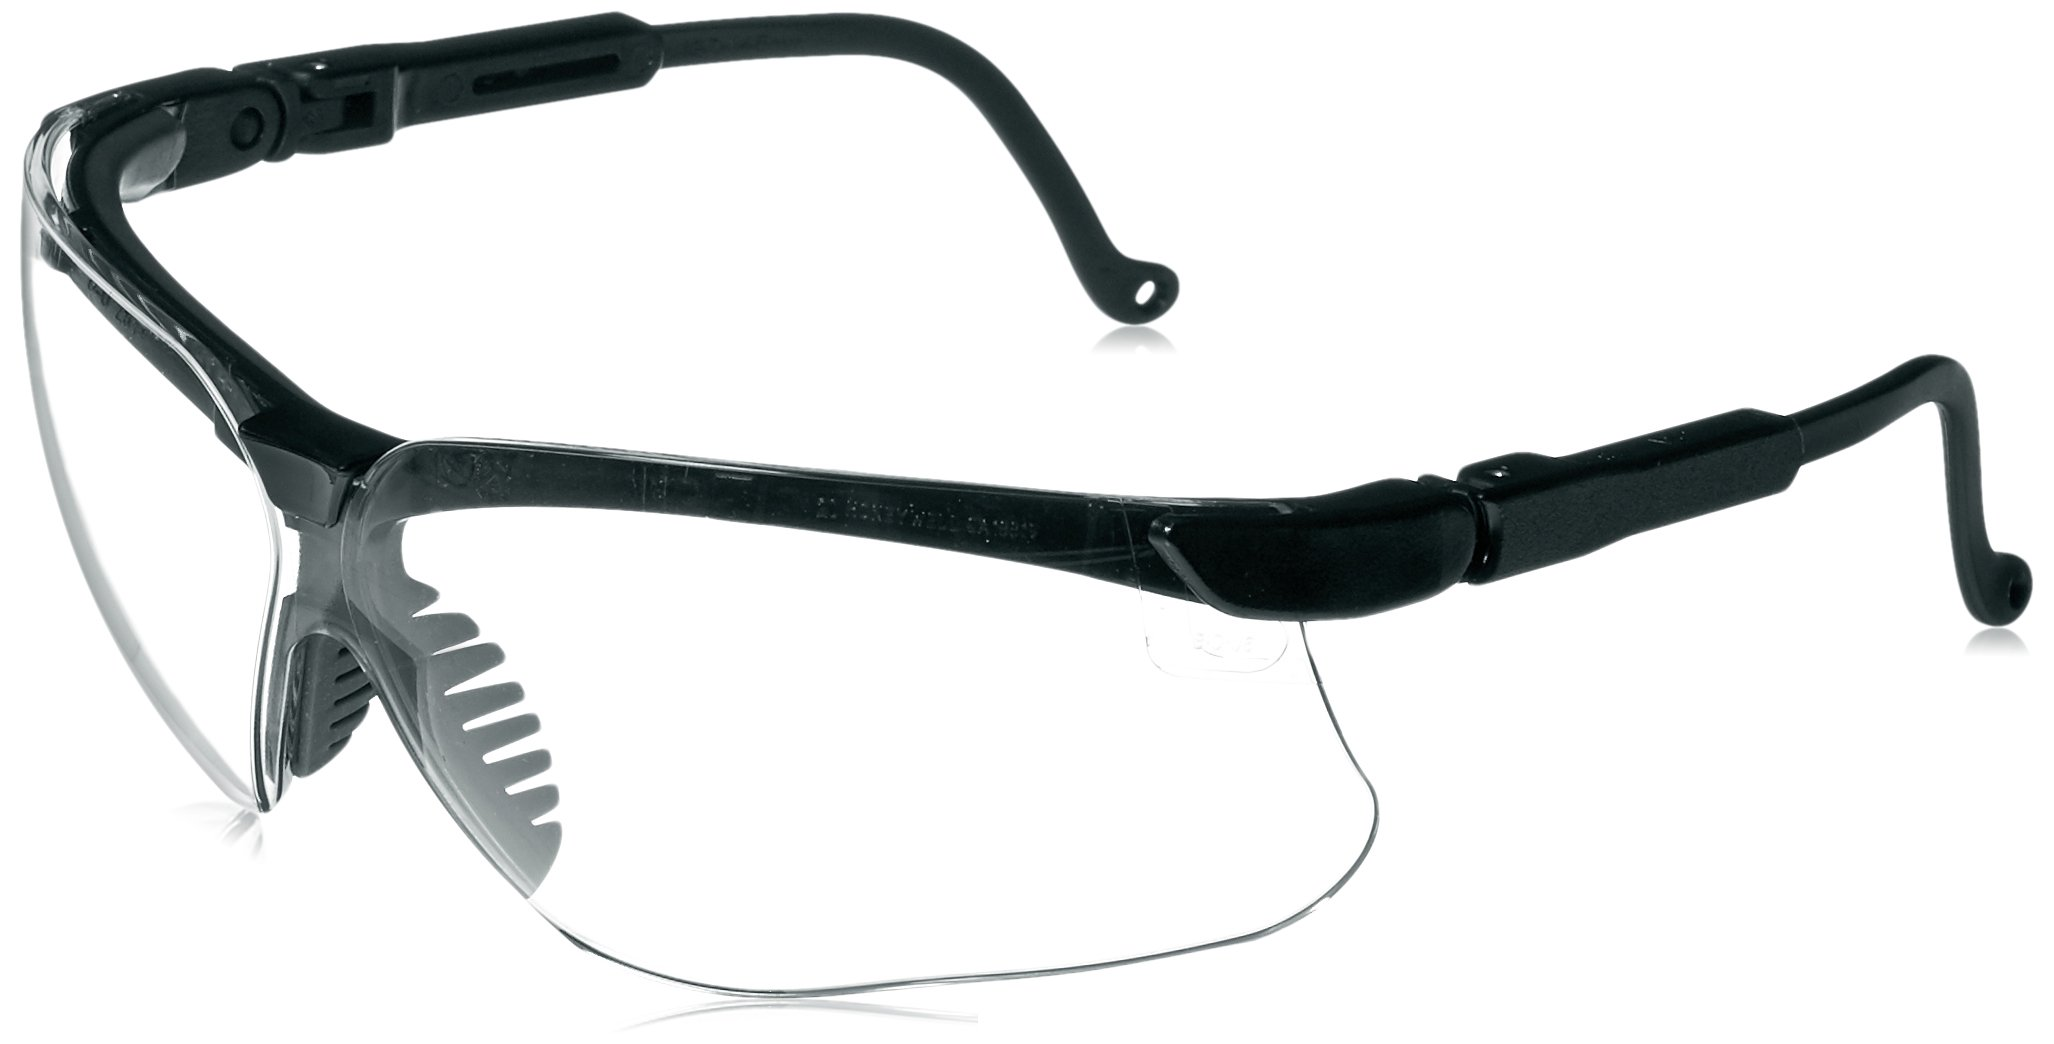 Howard Leight by Honeywell Genesis Sharp-Shooter Shooting Glasses, Clear Lens (R-03570) by Howard Leight